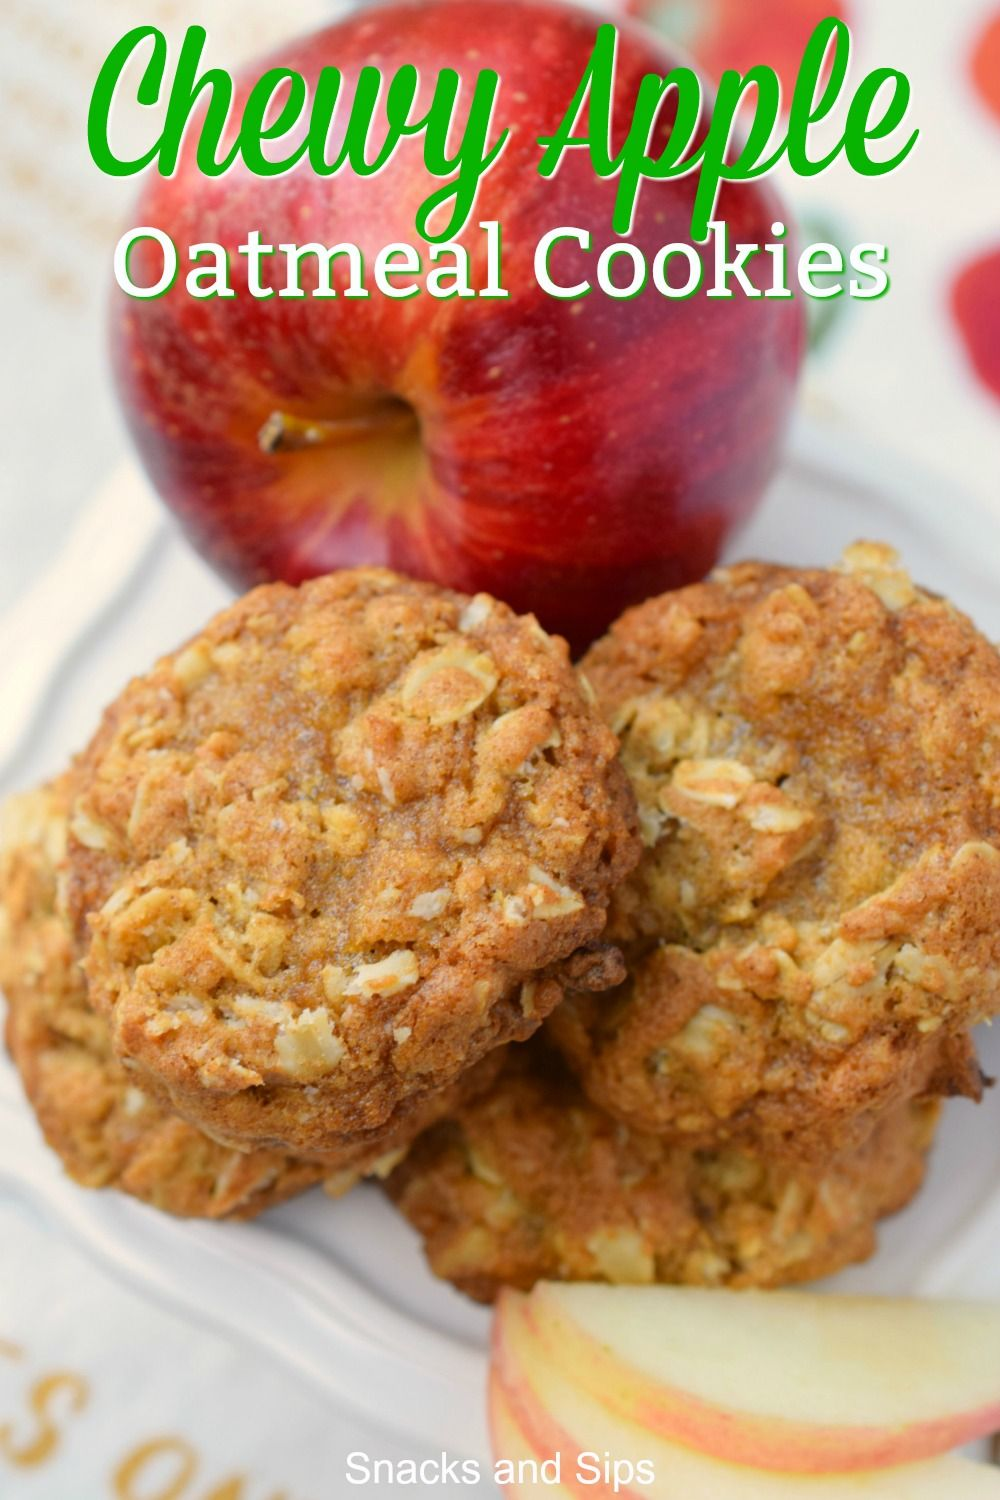 Chewy Apple Oatmeal Cookies Chewy Oatmeal Apple Cookies combine all your favorite flavors in one easy to prepare snack. Perfect after school nack with a glass of milk, you'll love this delicious treat.